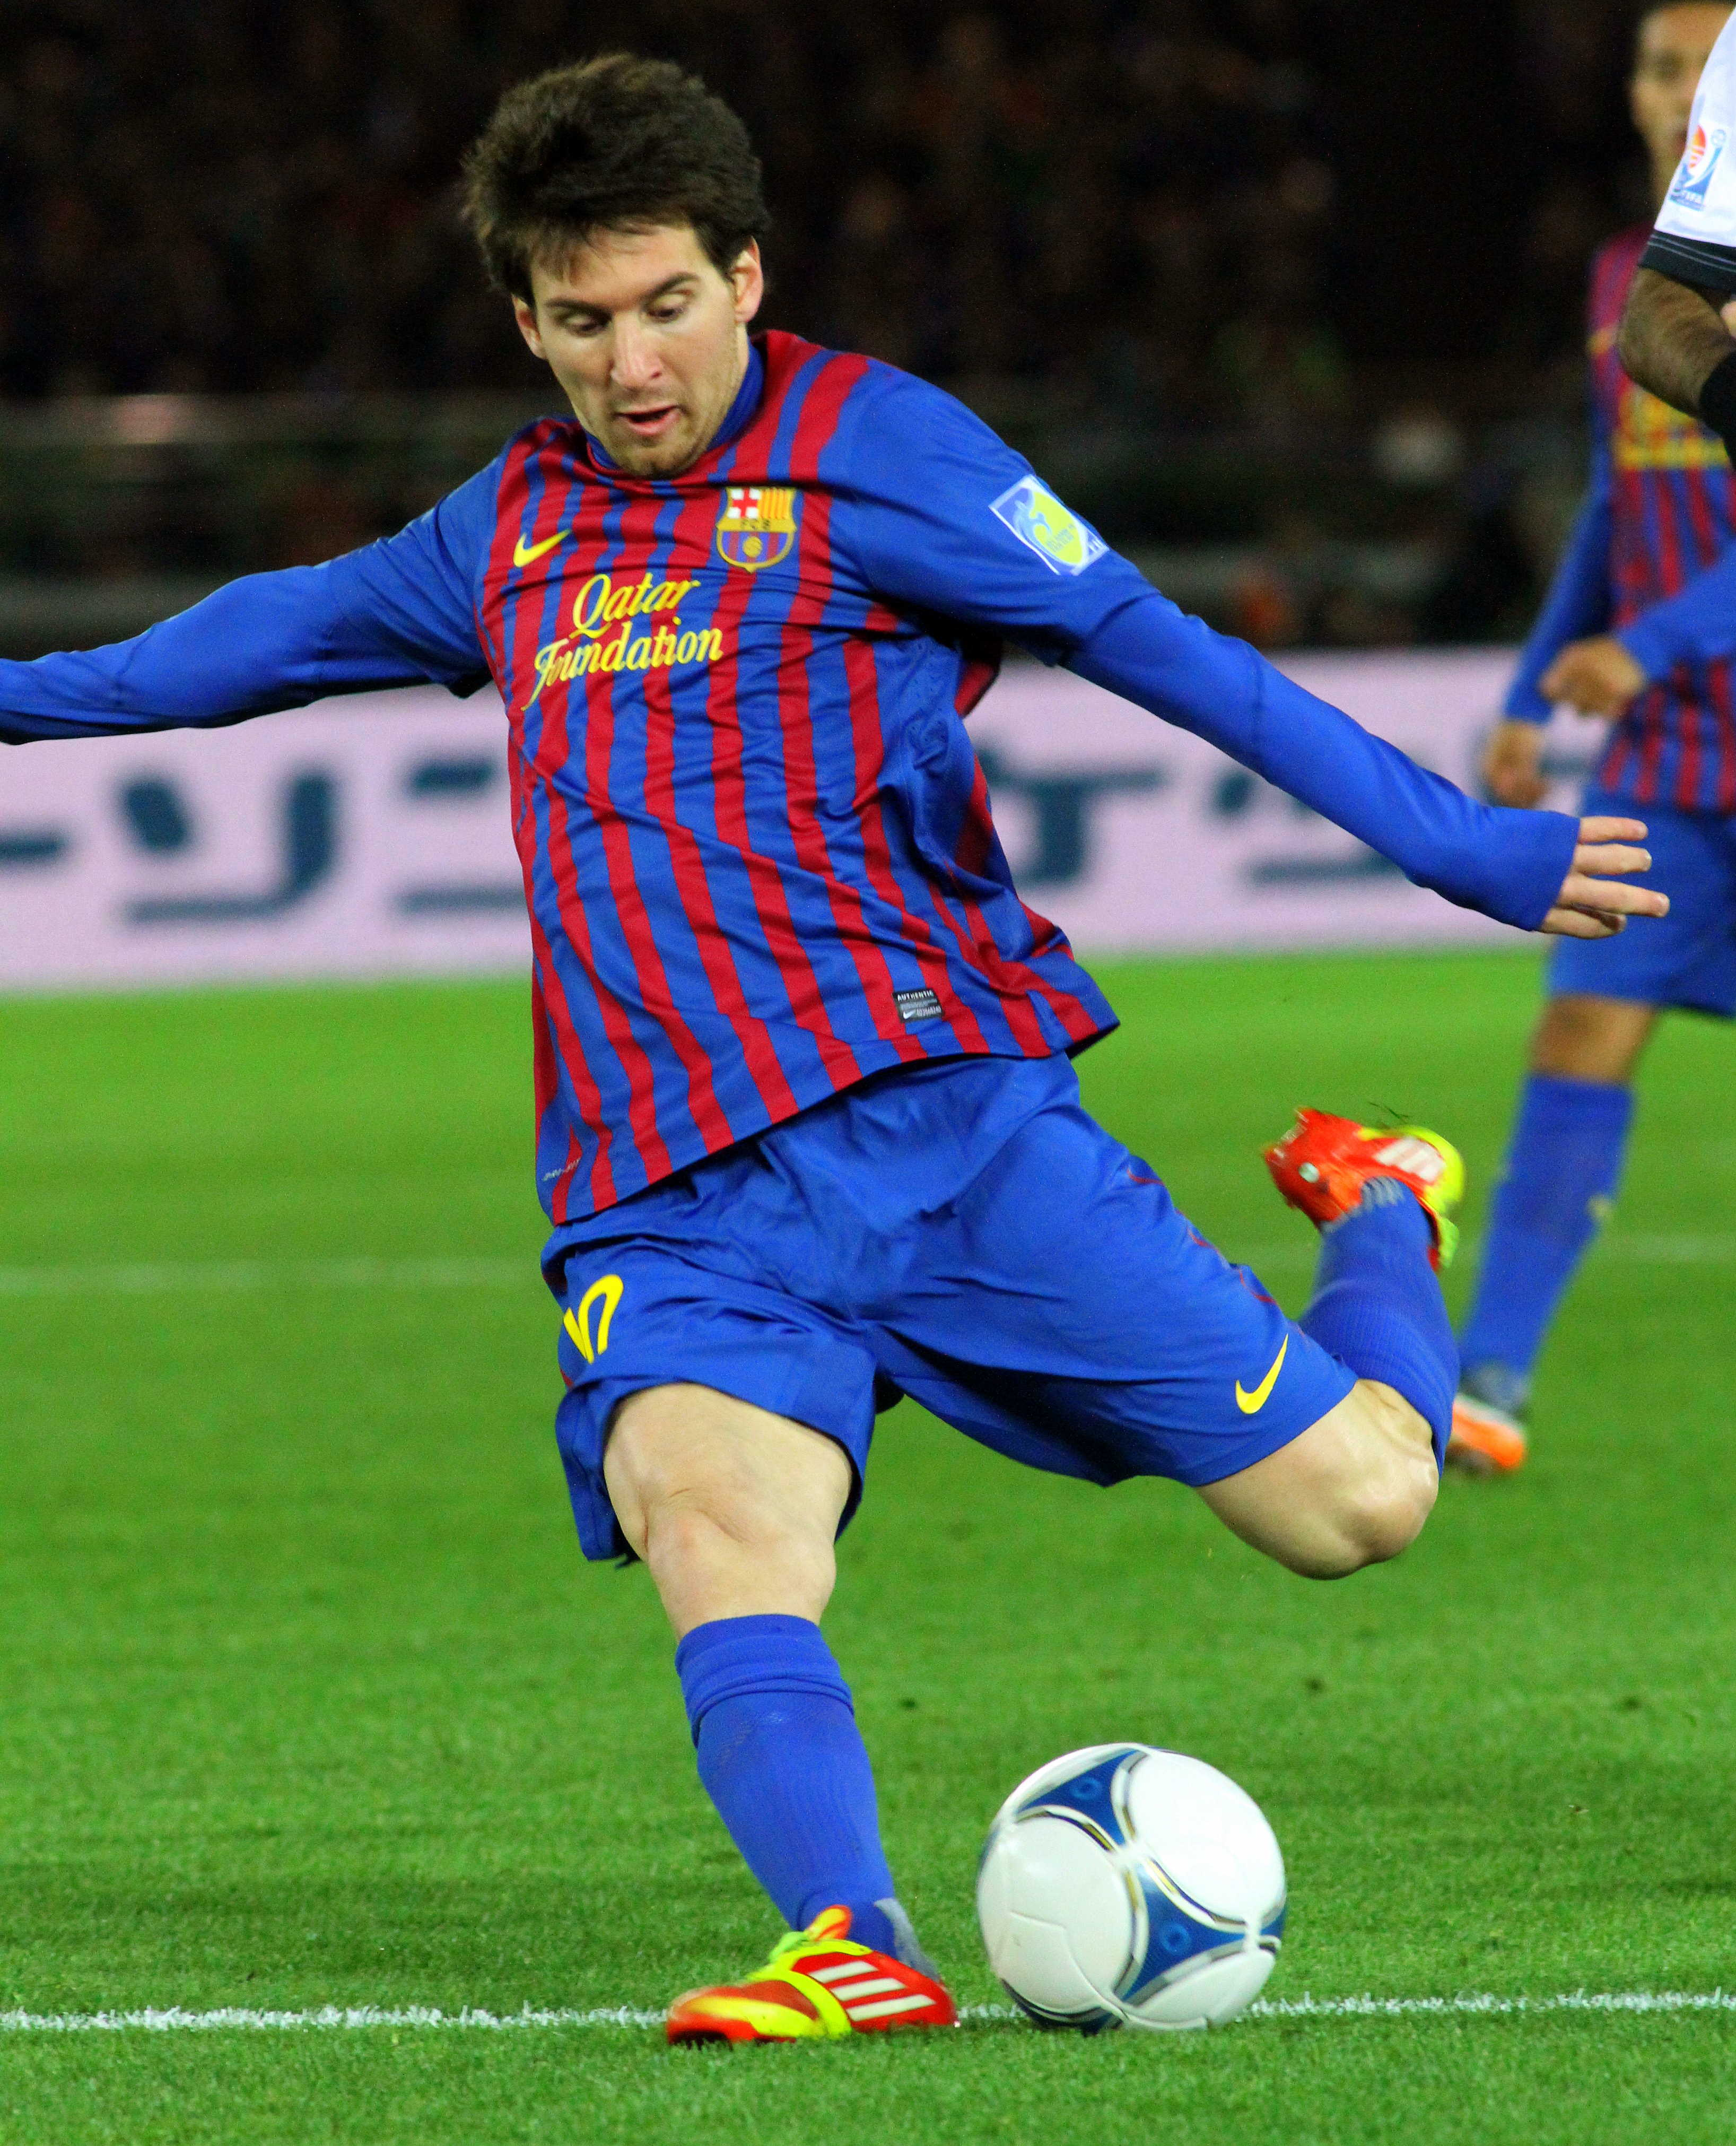 Lionel_Messi_Player_of_the_Year_2014